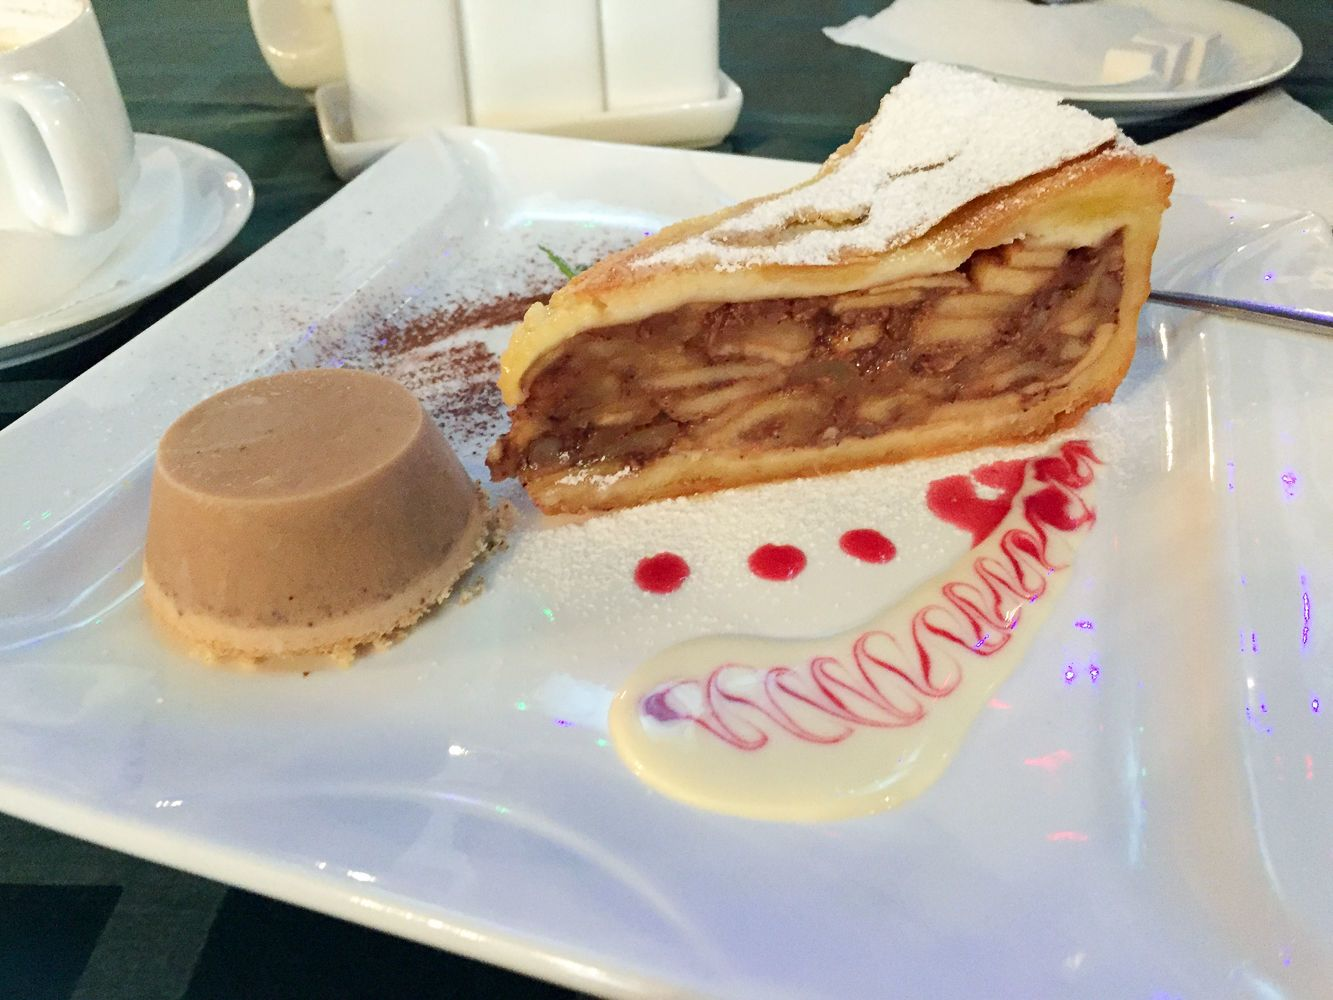 applie pie and desert in Central Asia